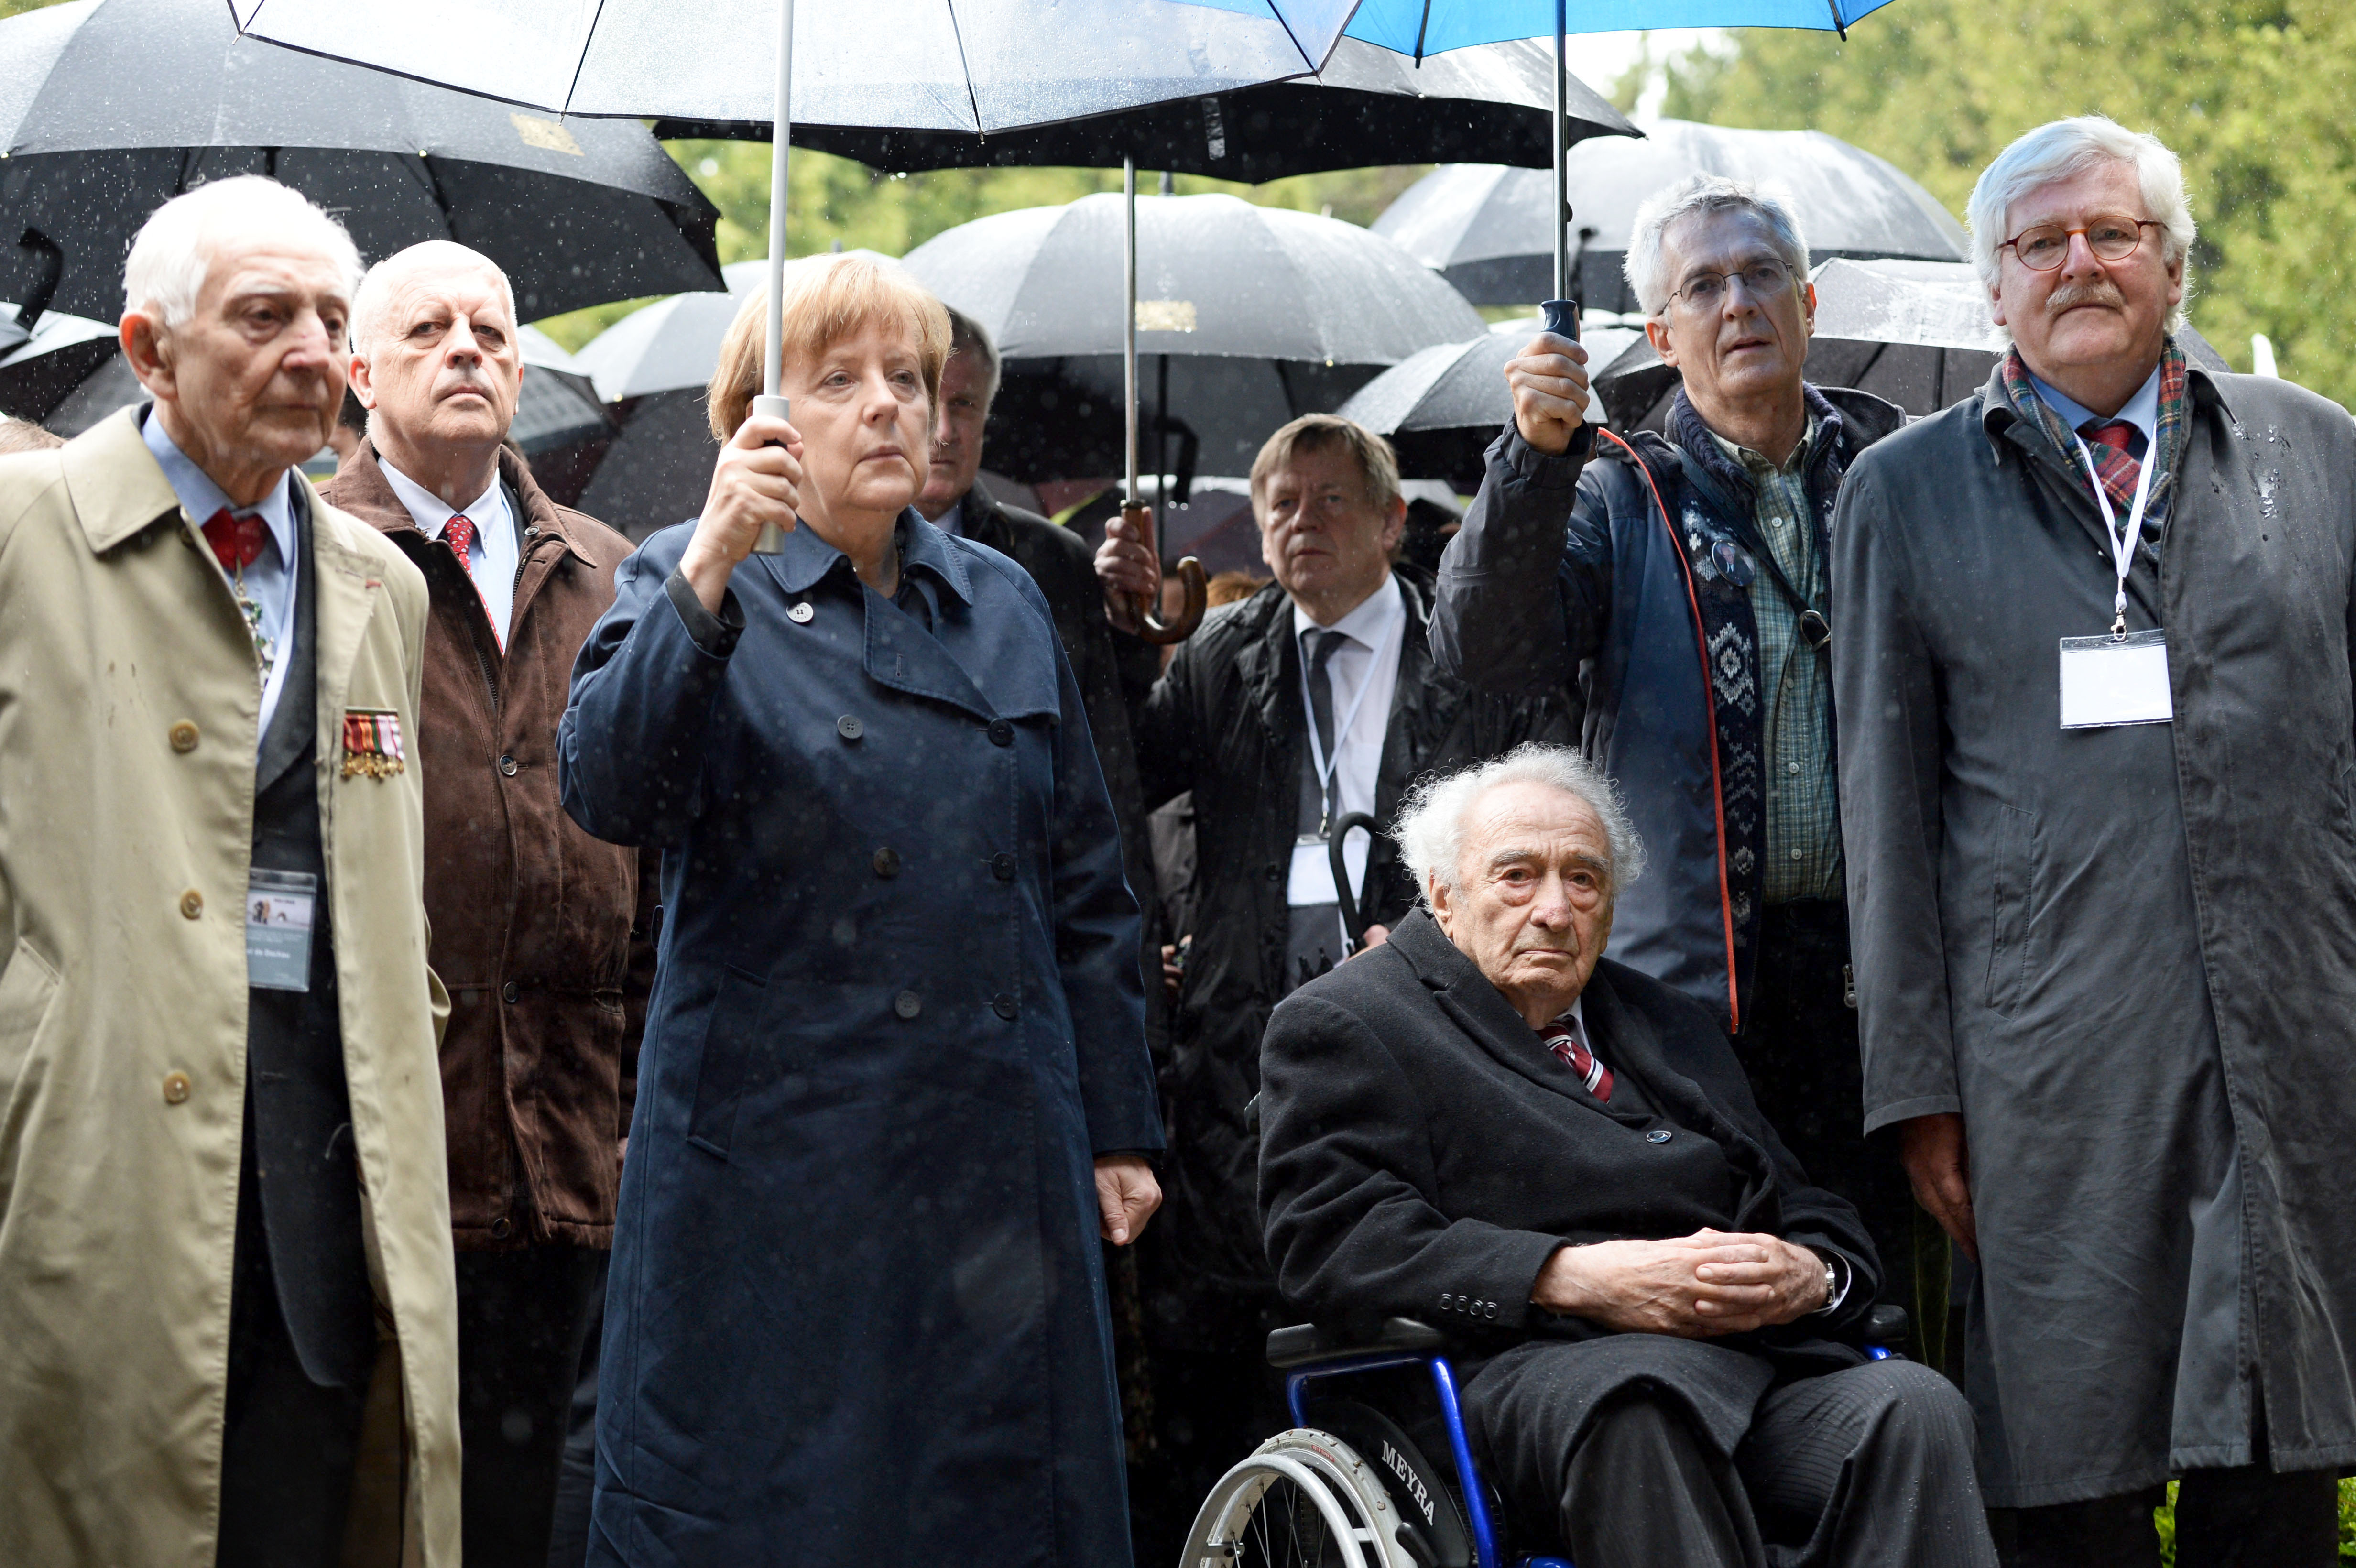 neo nazism today What zero tolerance of neo-nazi ideology looks like  it could hardly contrast  more vividly with how things are done here: germany today is a.